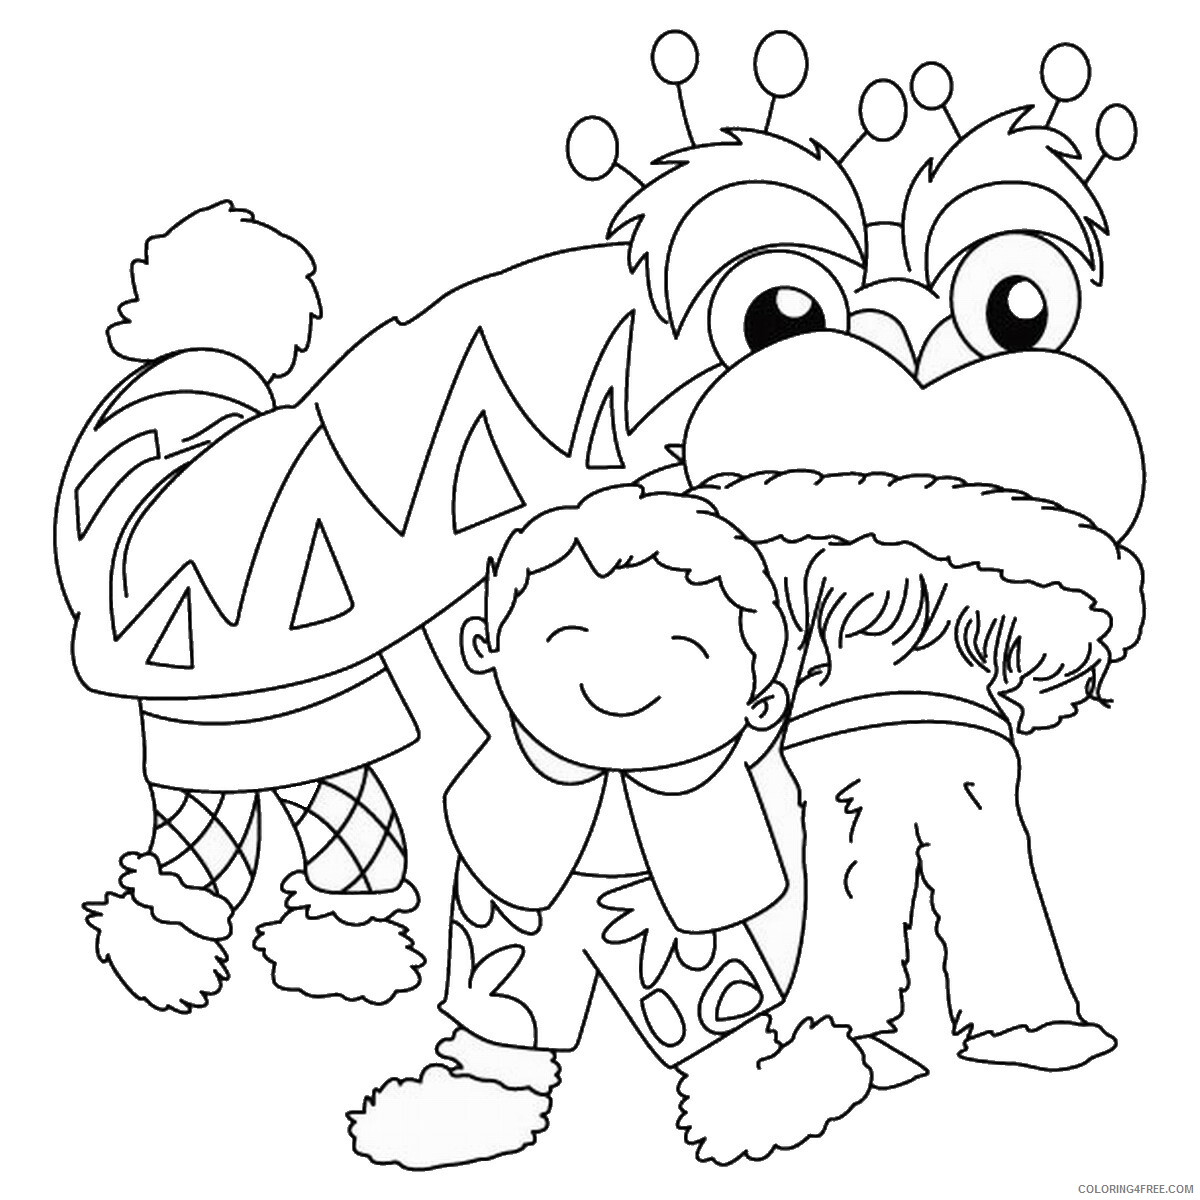 Chinese New Year Coloring Pages Holiday chinese_year_coloring11 Printable 2021 0061 Coloring4free